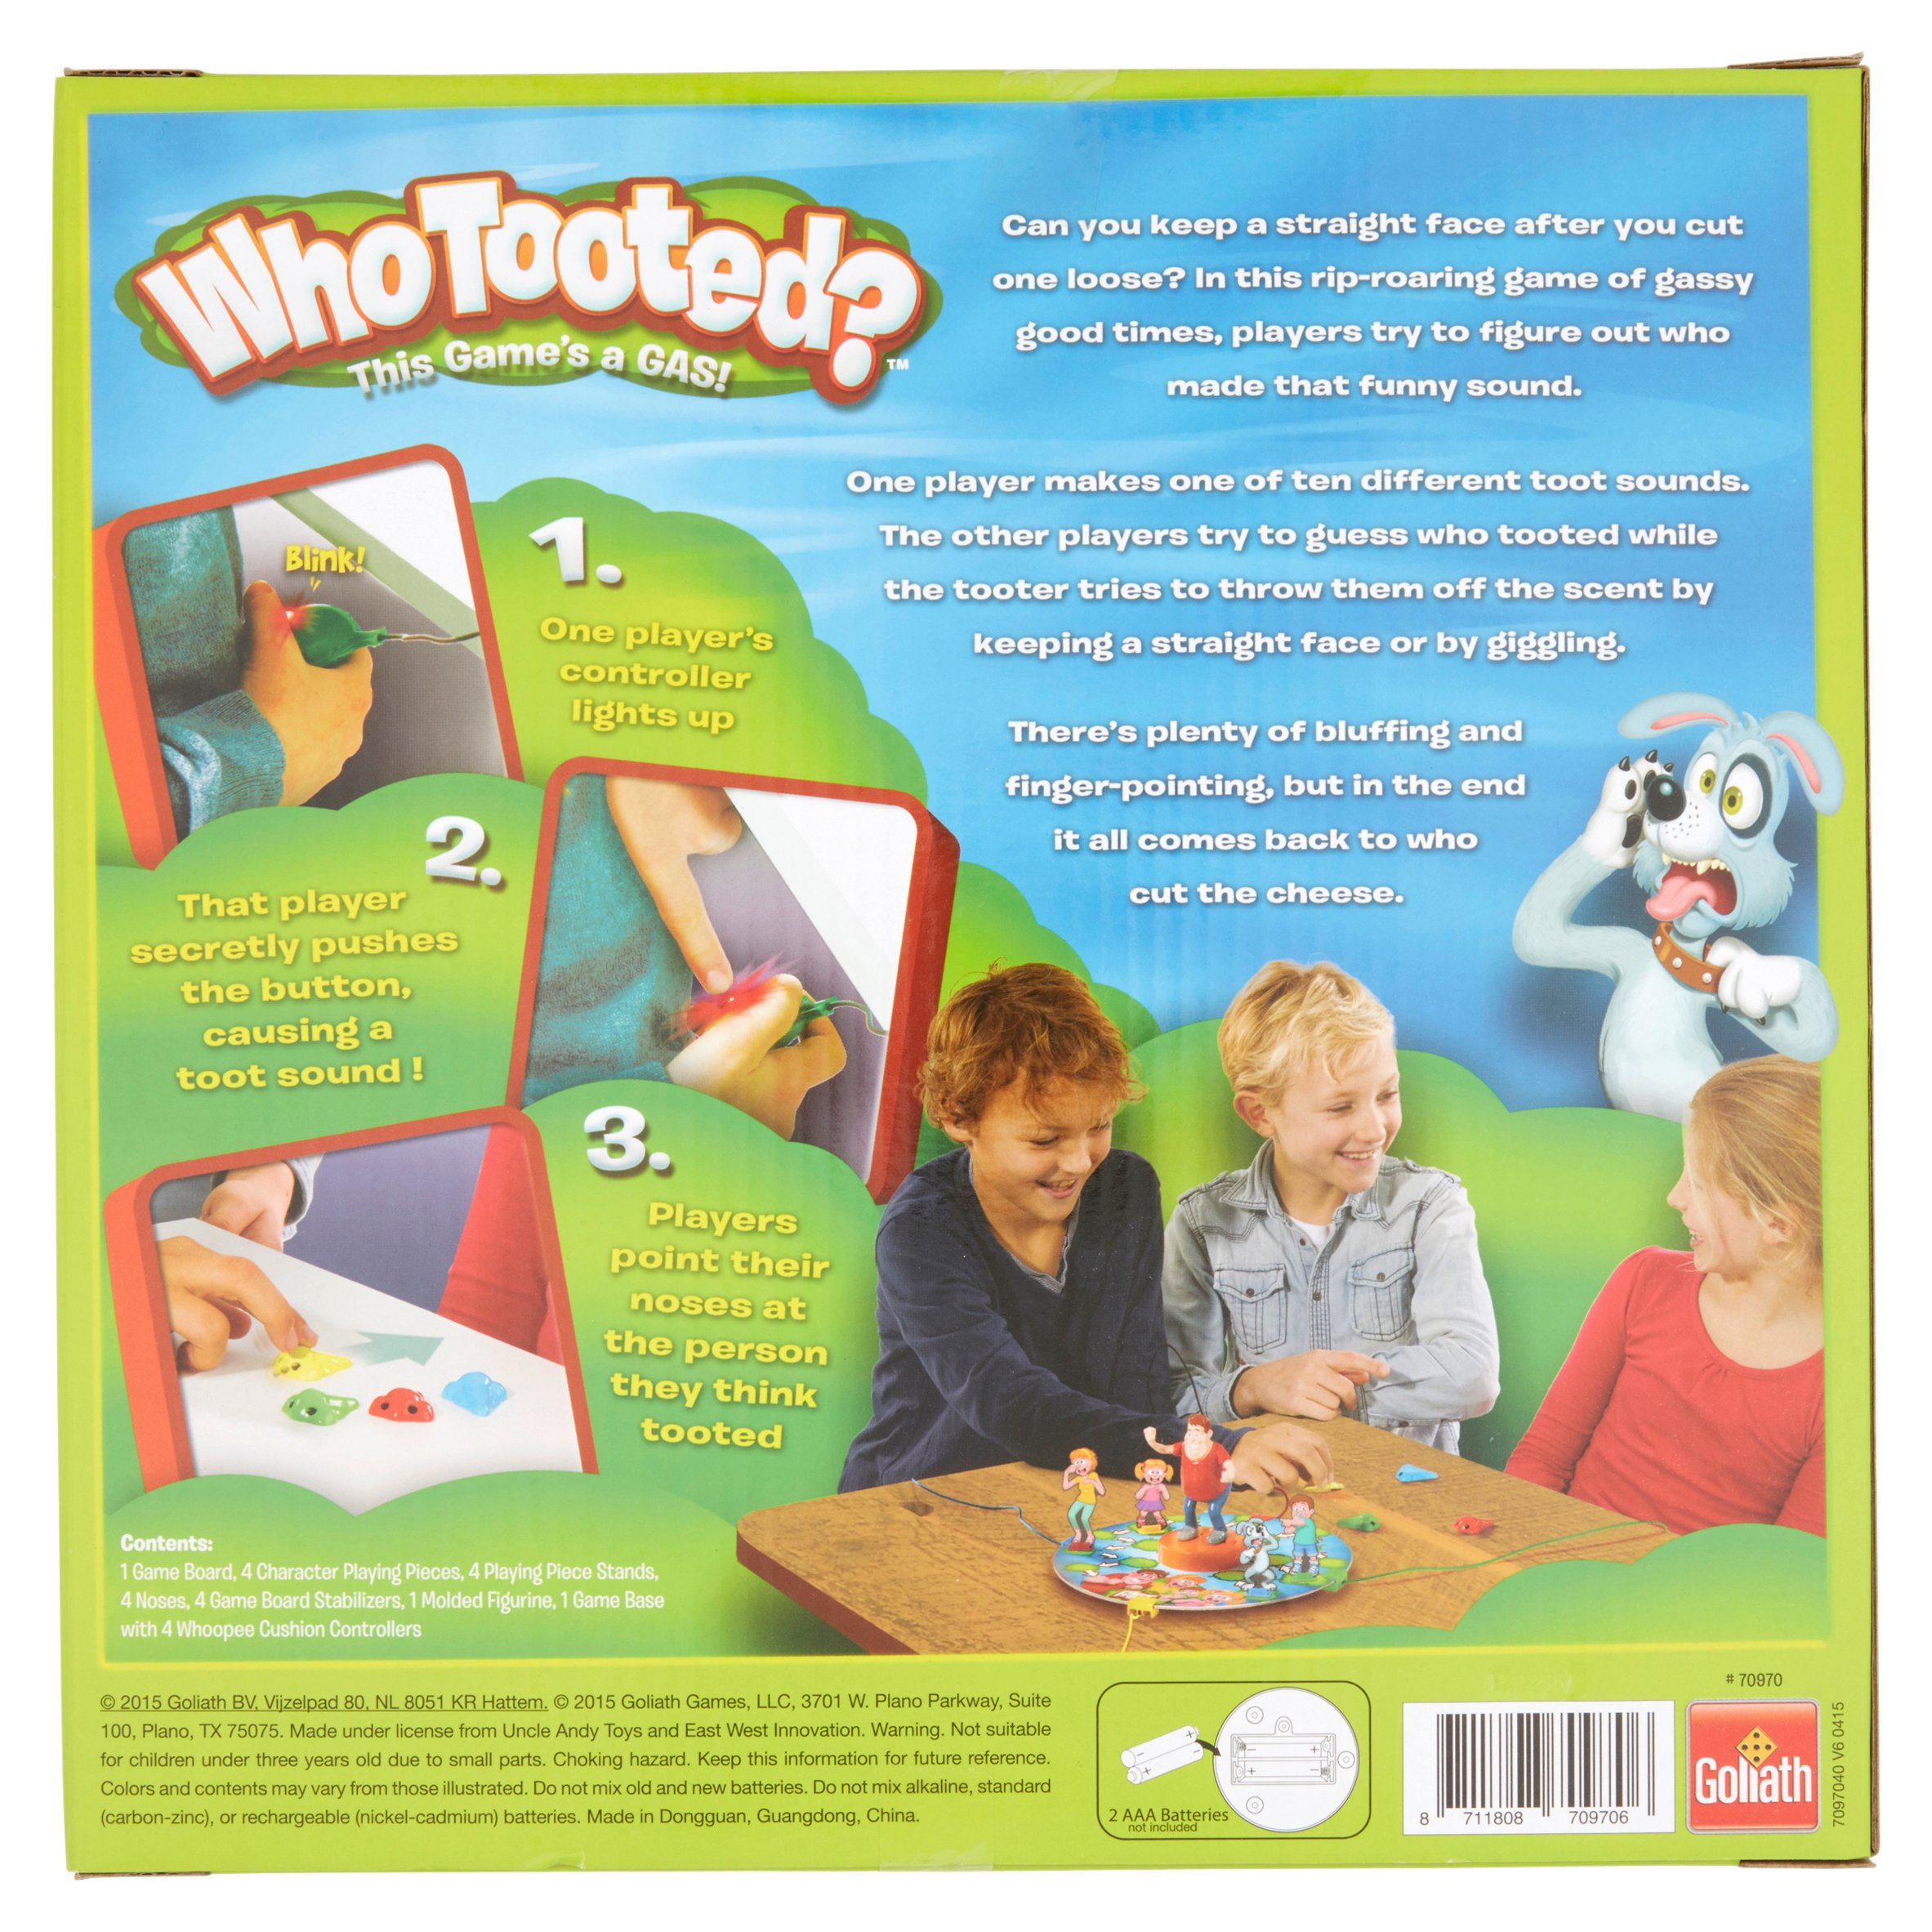 Goliath Whotooted? Board Game 5+